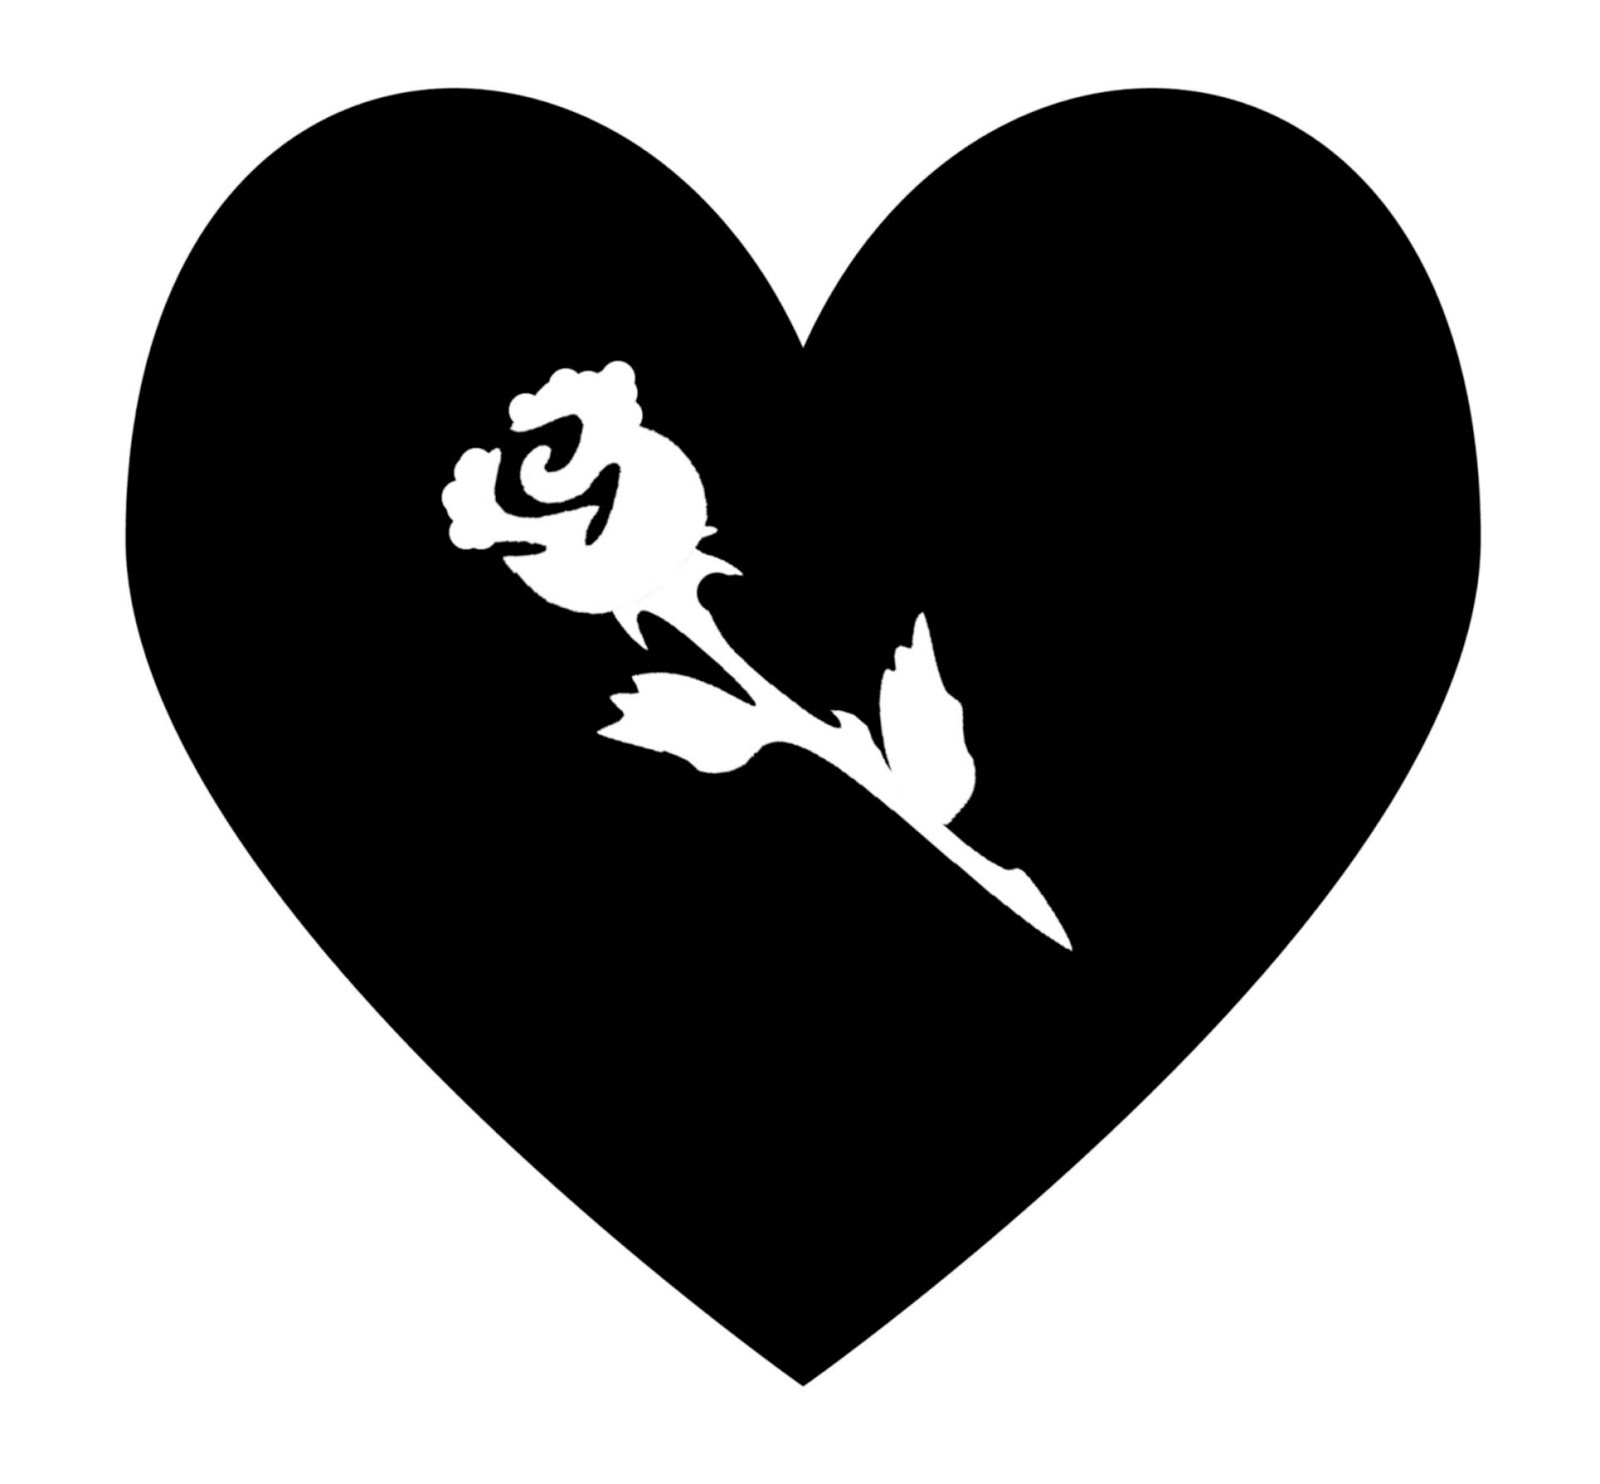 Heart Silhouette - ClipArt Best